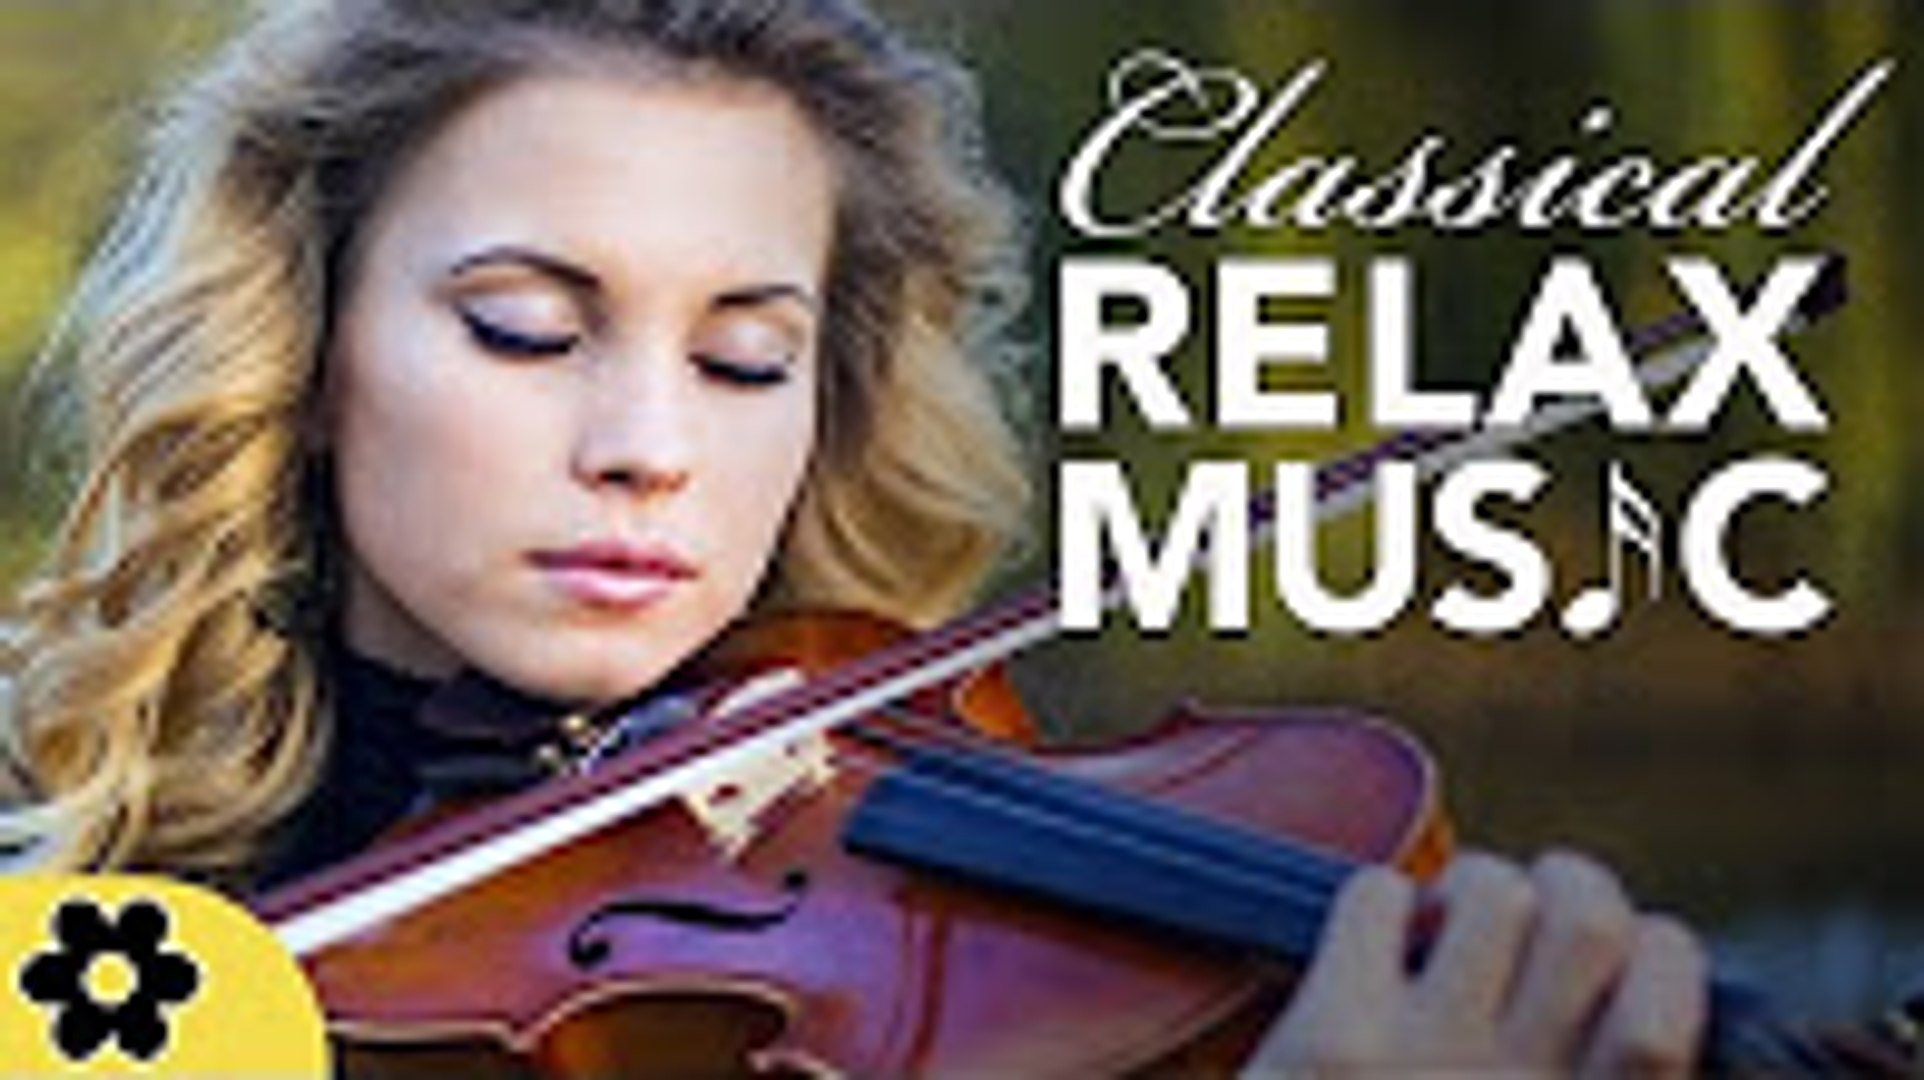 Instrumental Music for Relaxation, Classical Music, Soothing Music, Relax, Background Music, ♫E158D